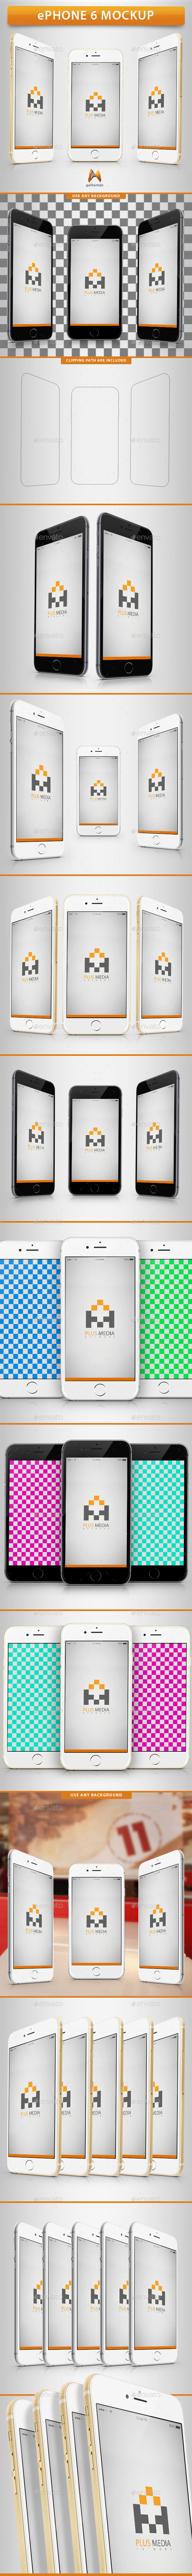 GraphicRiver ePhone 6 Mockup 8975859